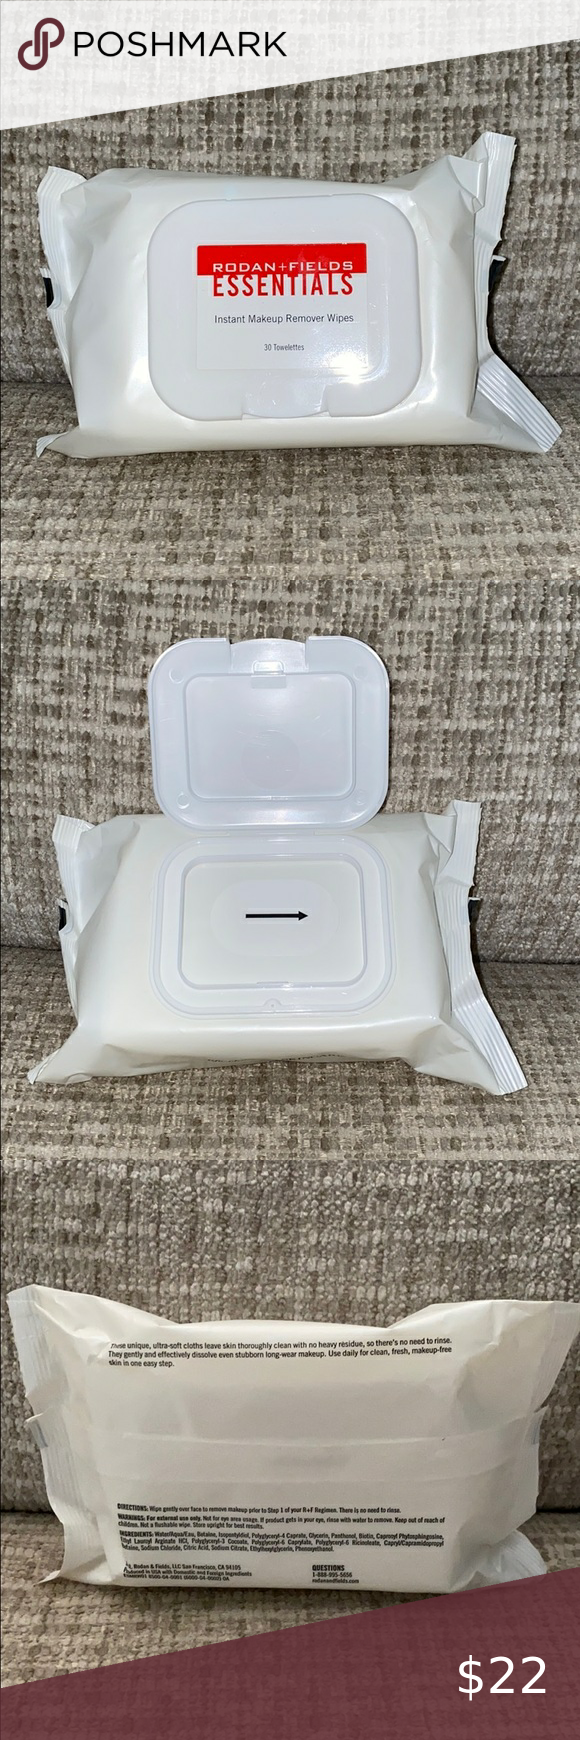 Rodan and Fields Instant Makeup Remover Wipes in 2020